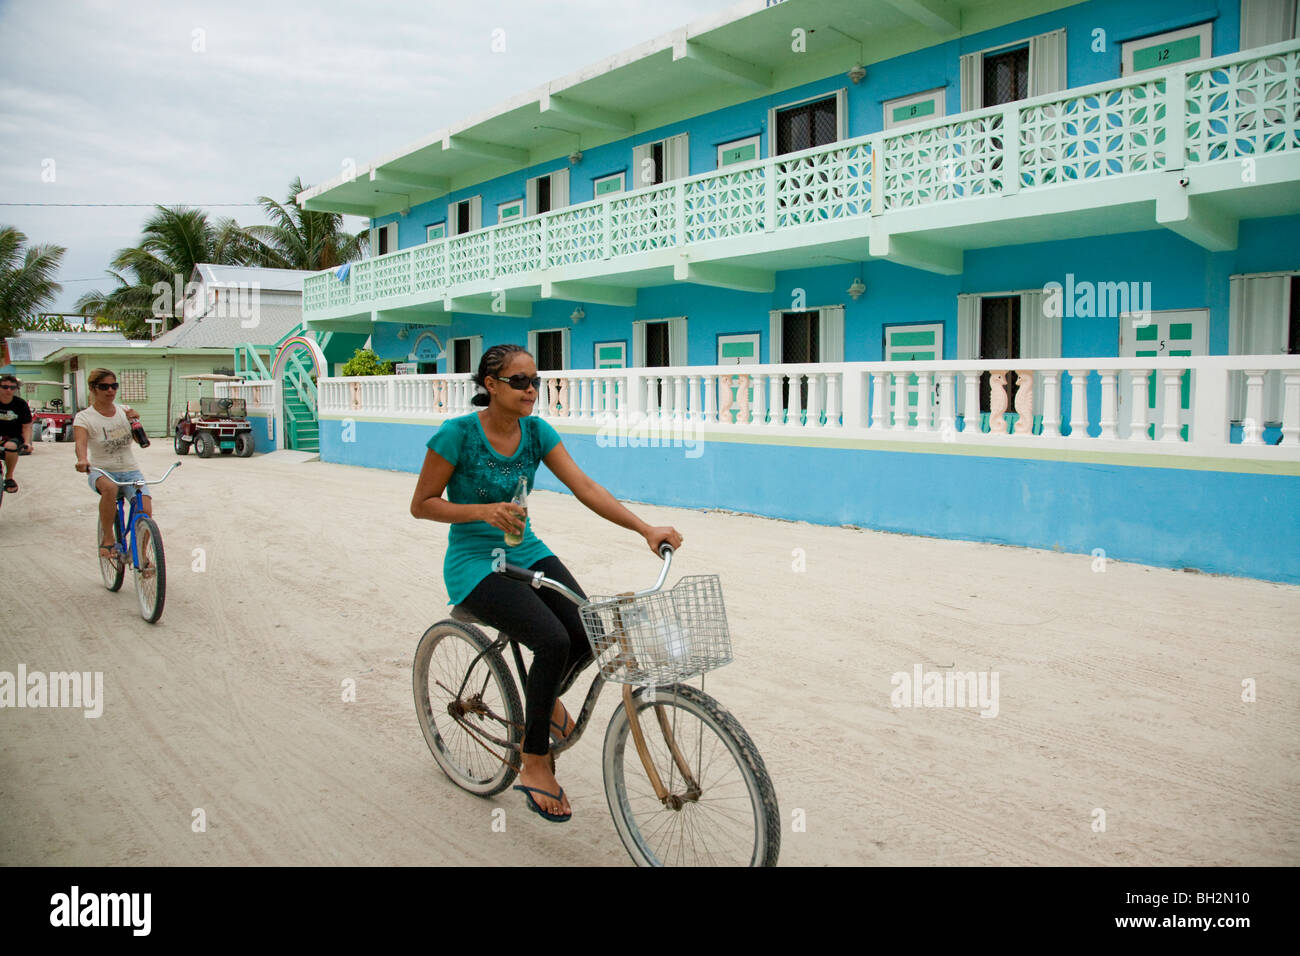 Caye Caulker, Northern Cayes, Belize. - Stock Image